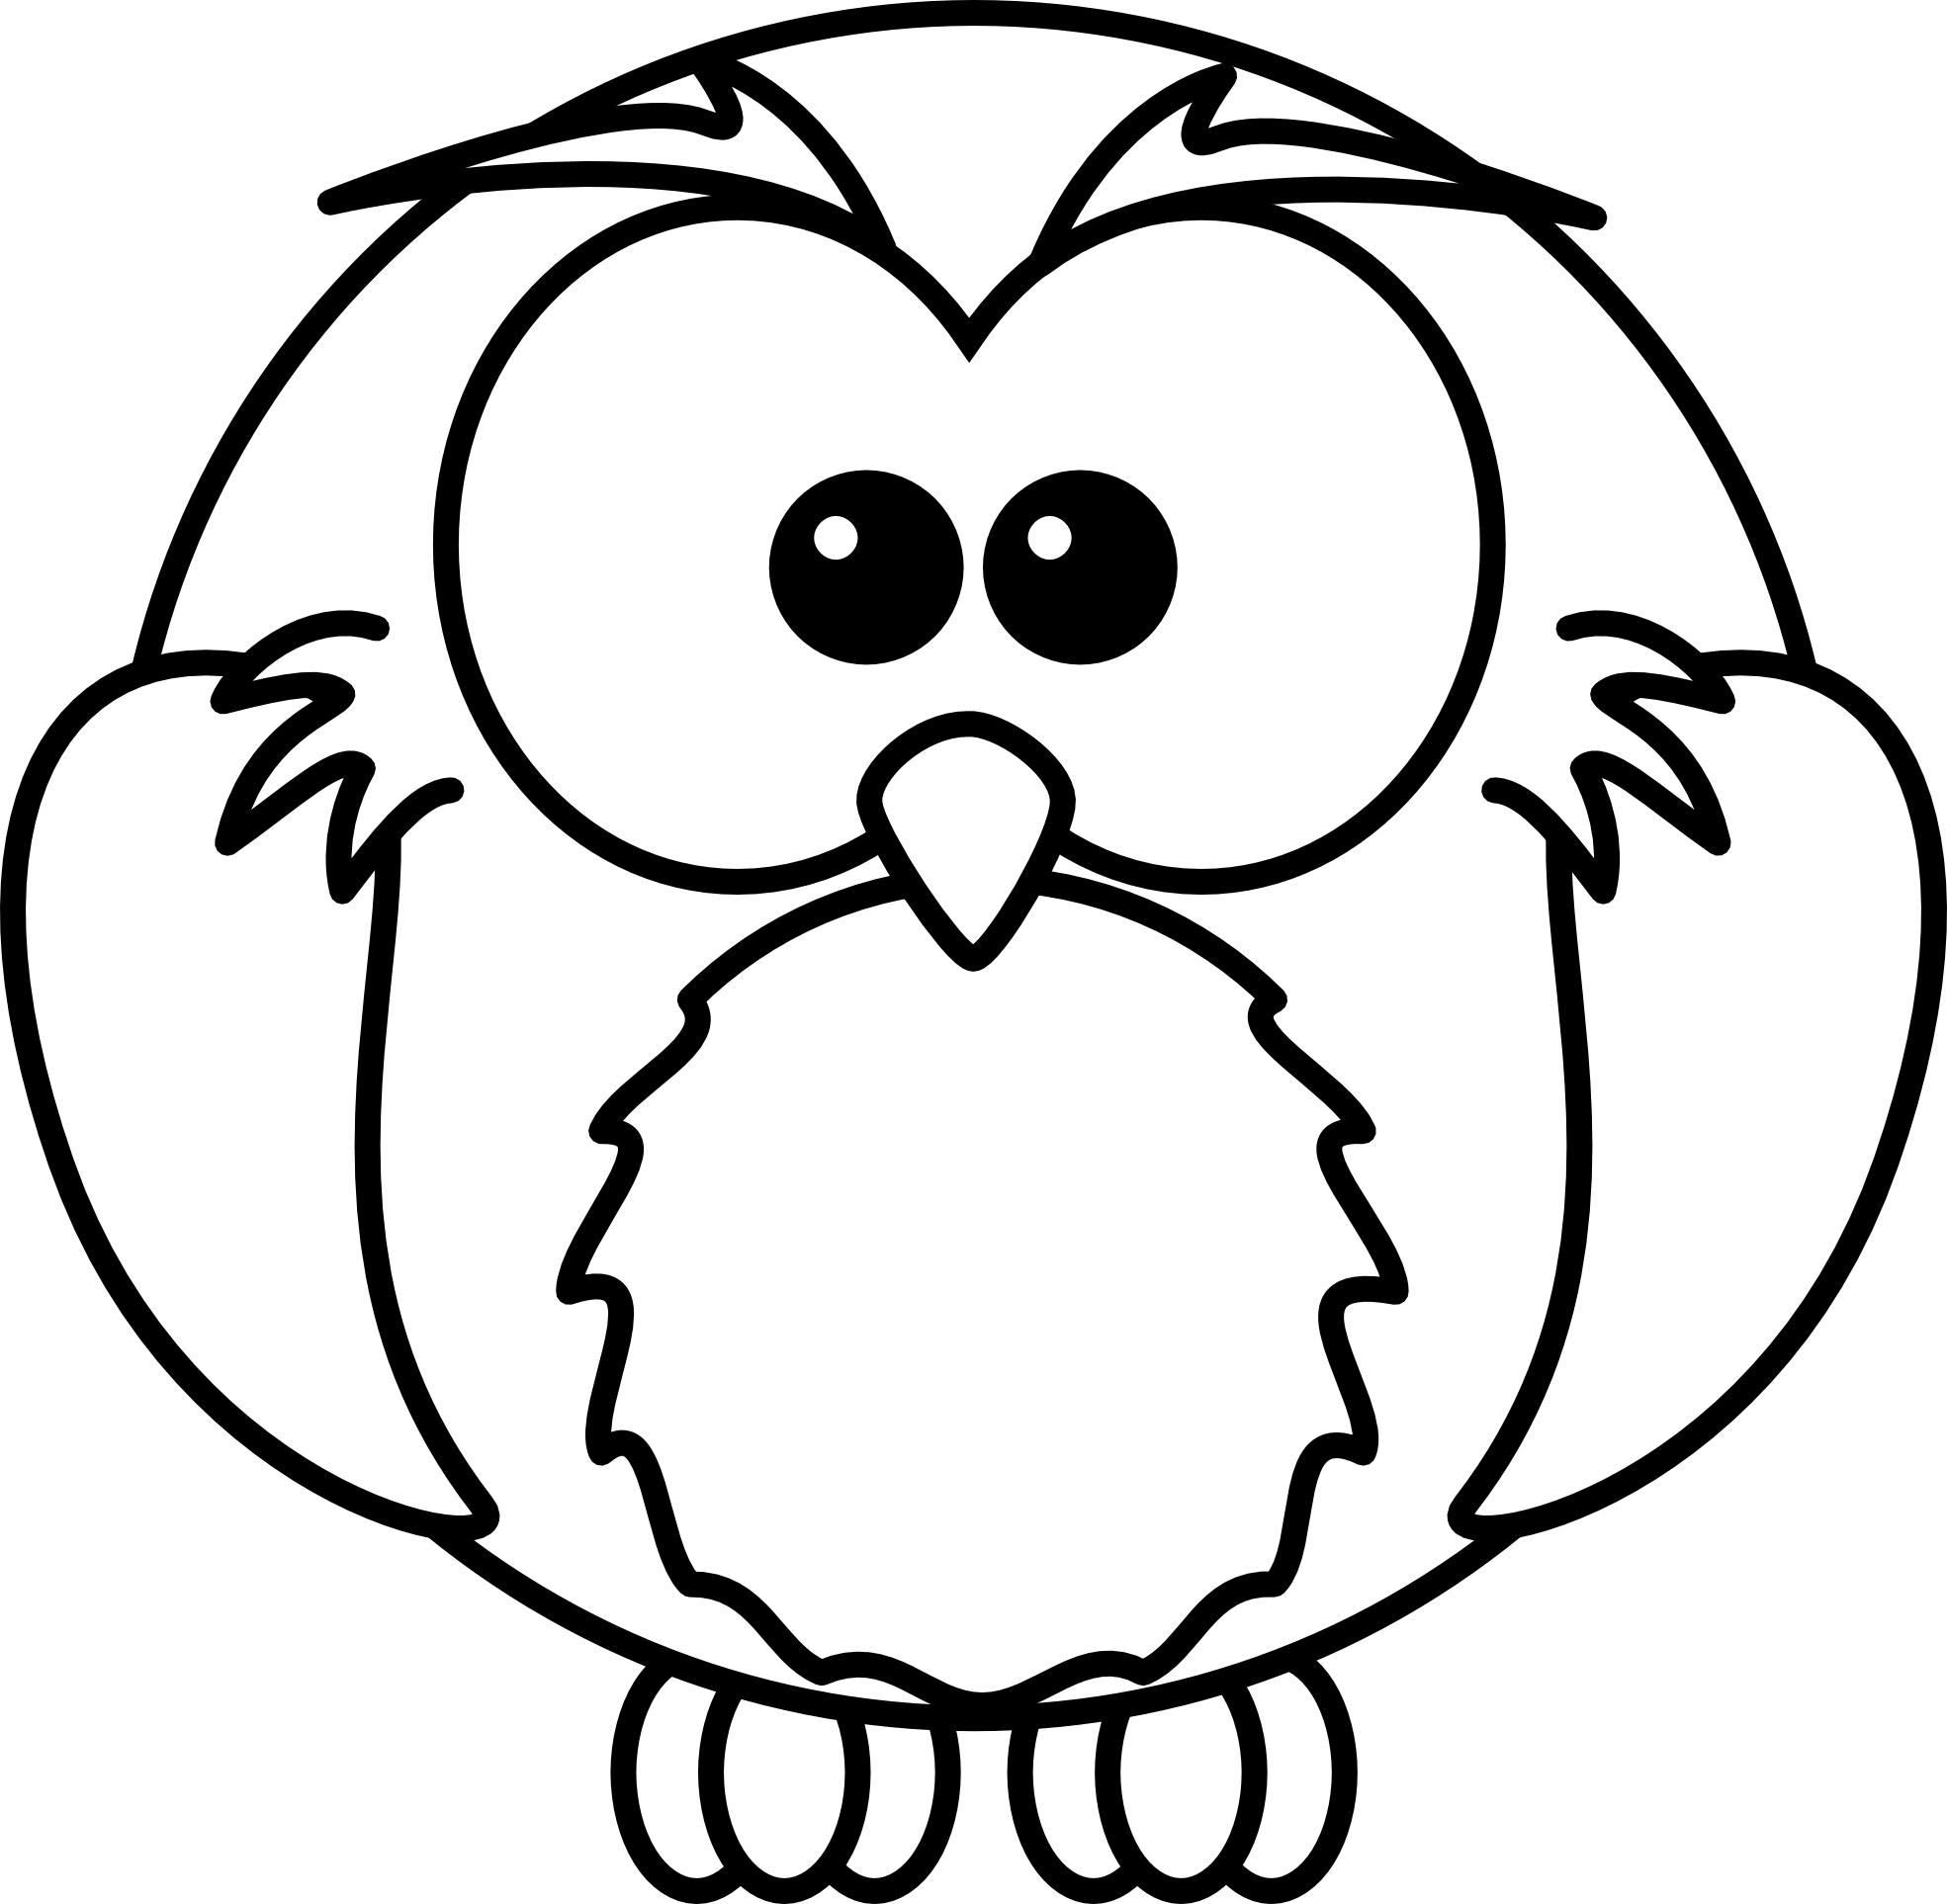 Free owl clipart black and white picture freeuse stock Best Owl Clipart Black and White #28298 - Clipartion.com picture freeuse stock